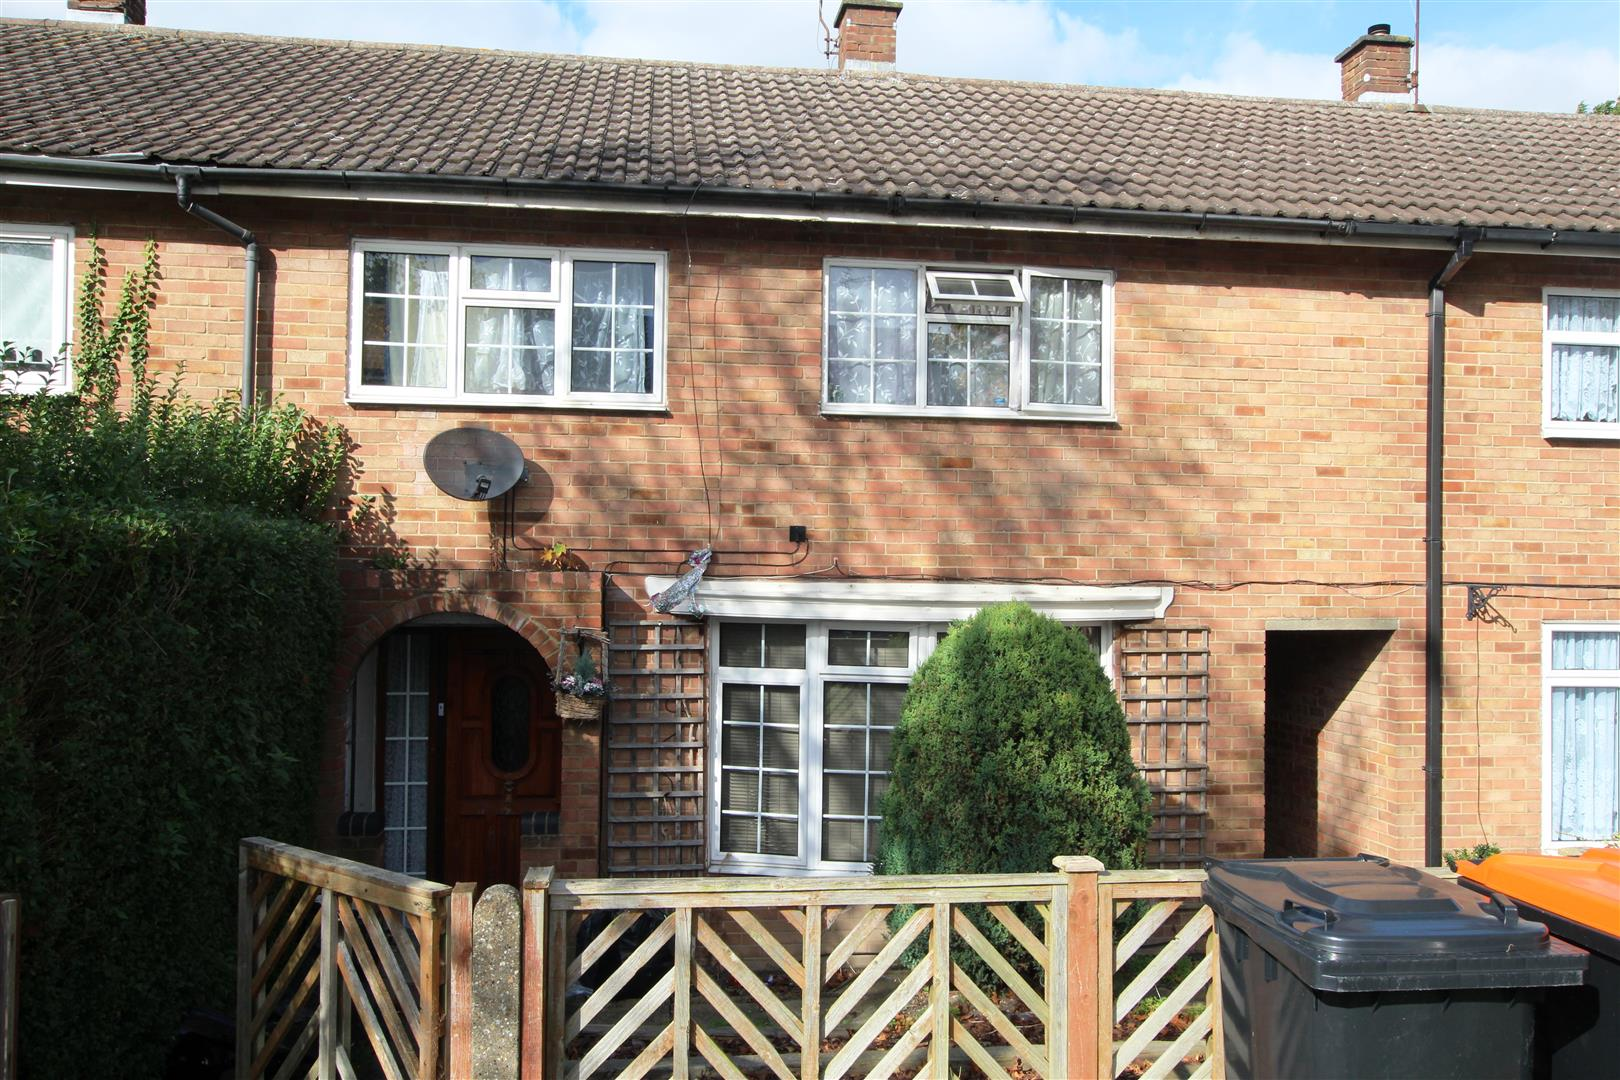 3 Bedrooms Terraced House for sale in Meadow Lane, Houghton Regis